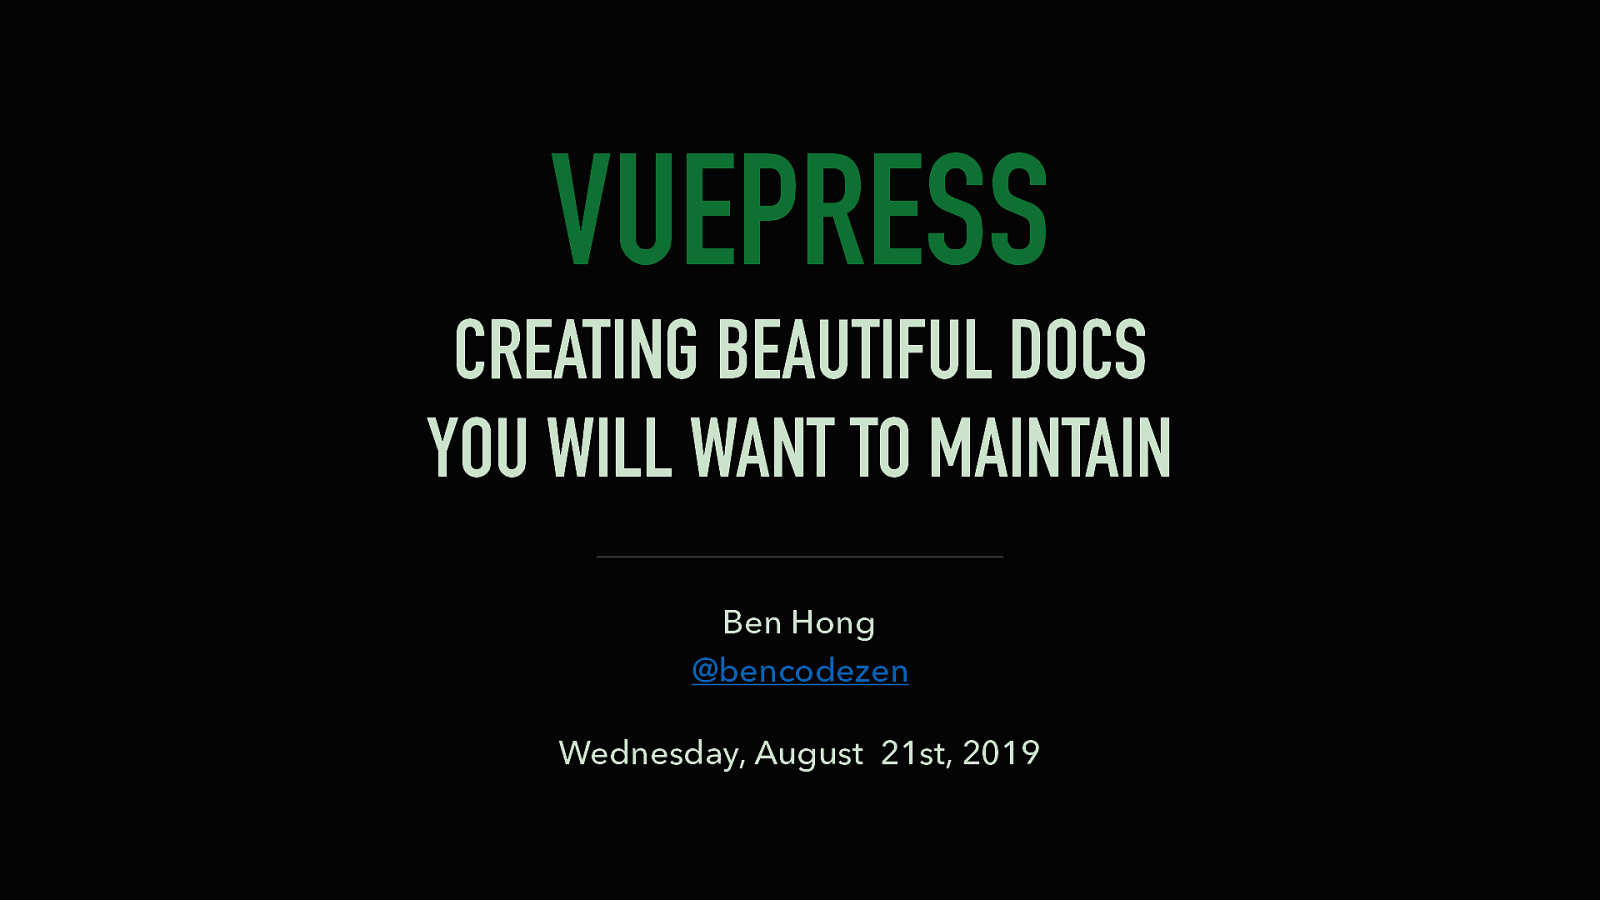 VuePress: Creating Beautiful Docs You Will Want to Maintain